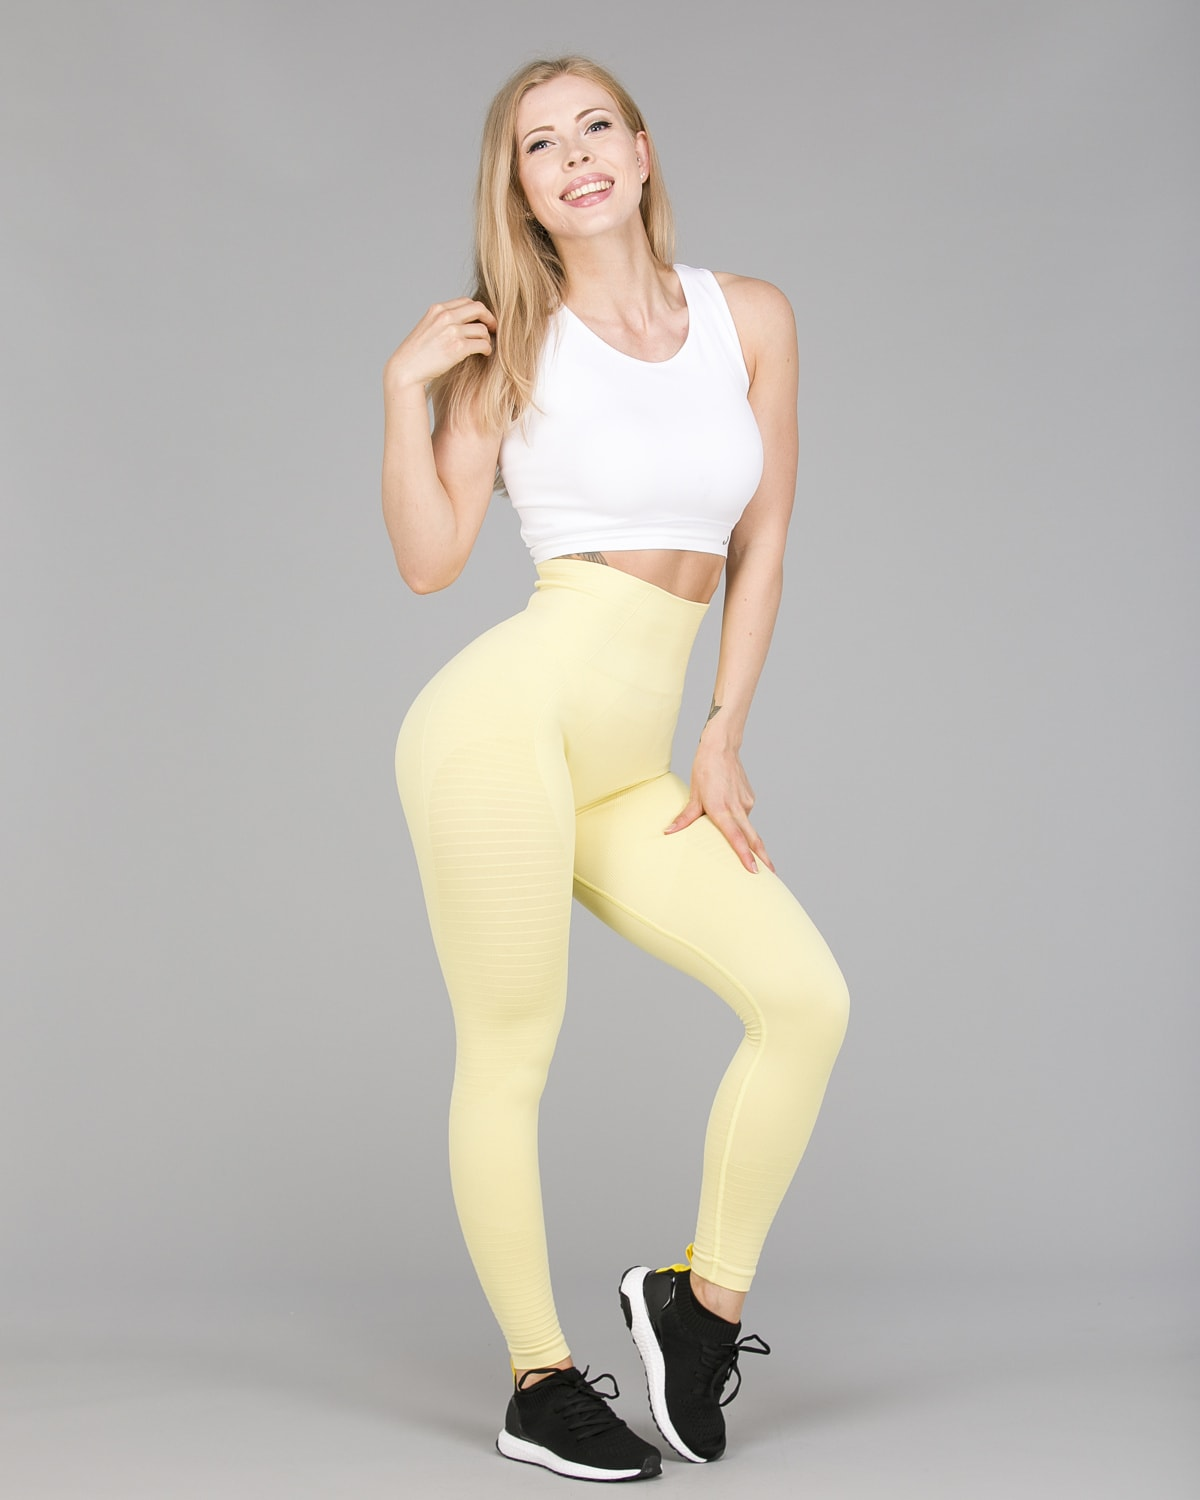 Jerf Gela 2.0 Tights Yellow Pastel2